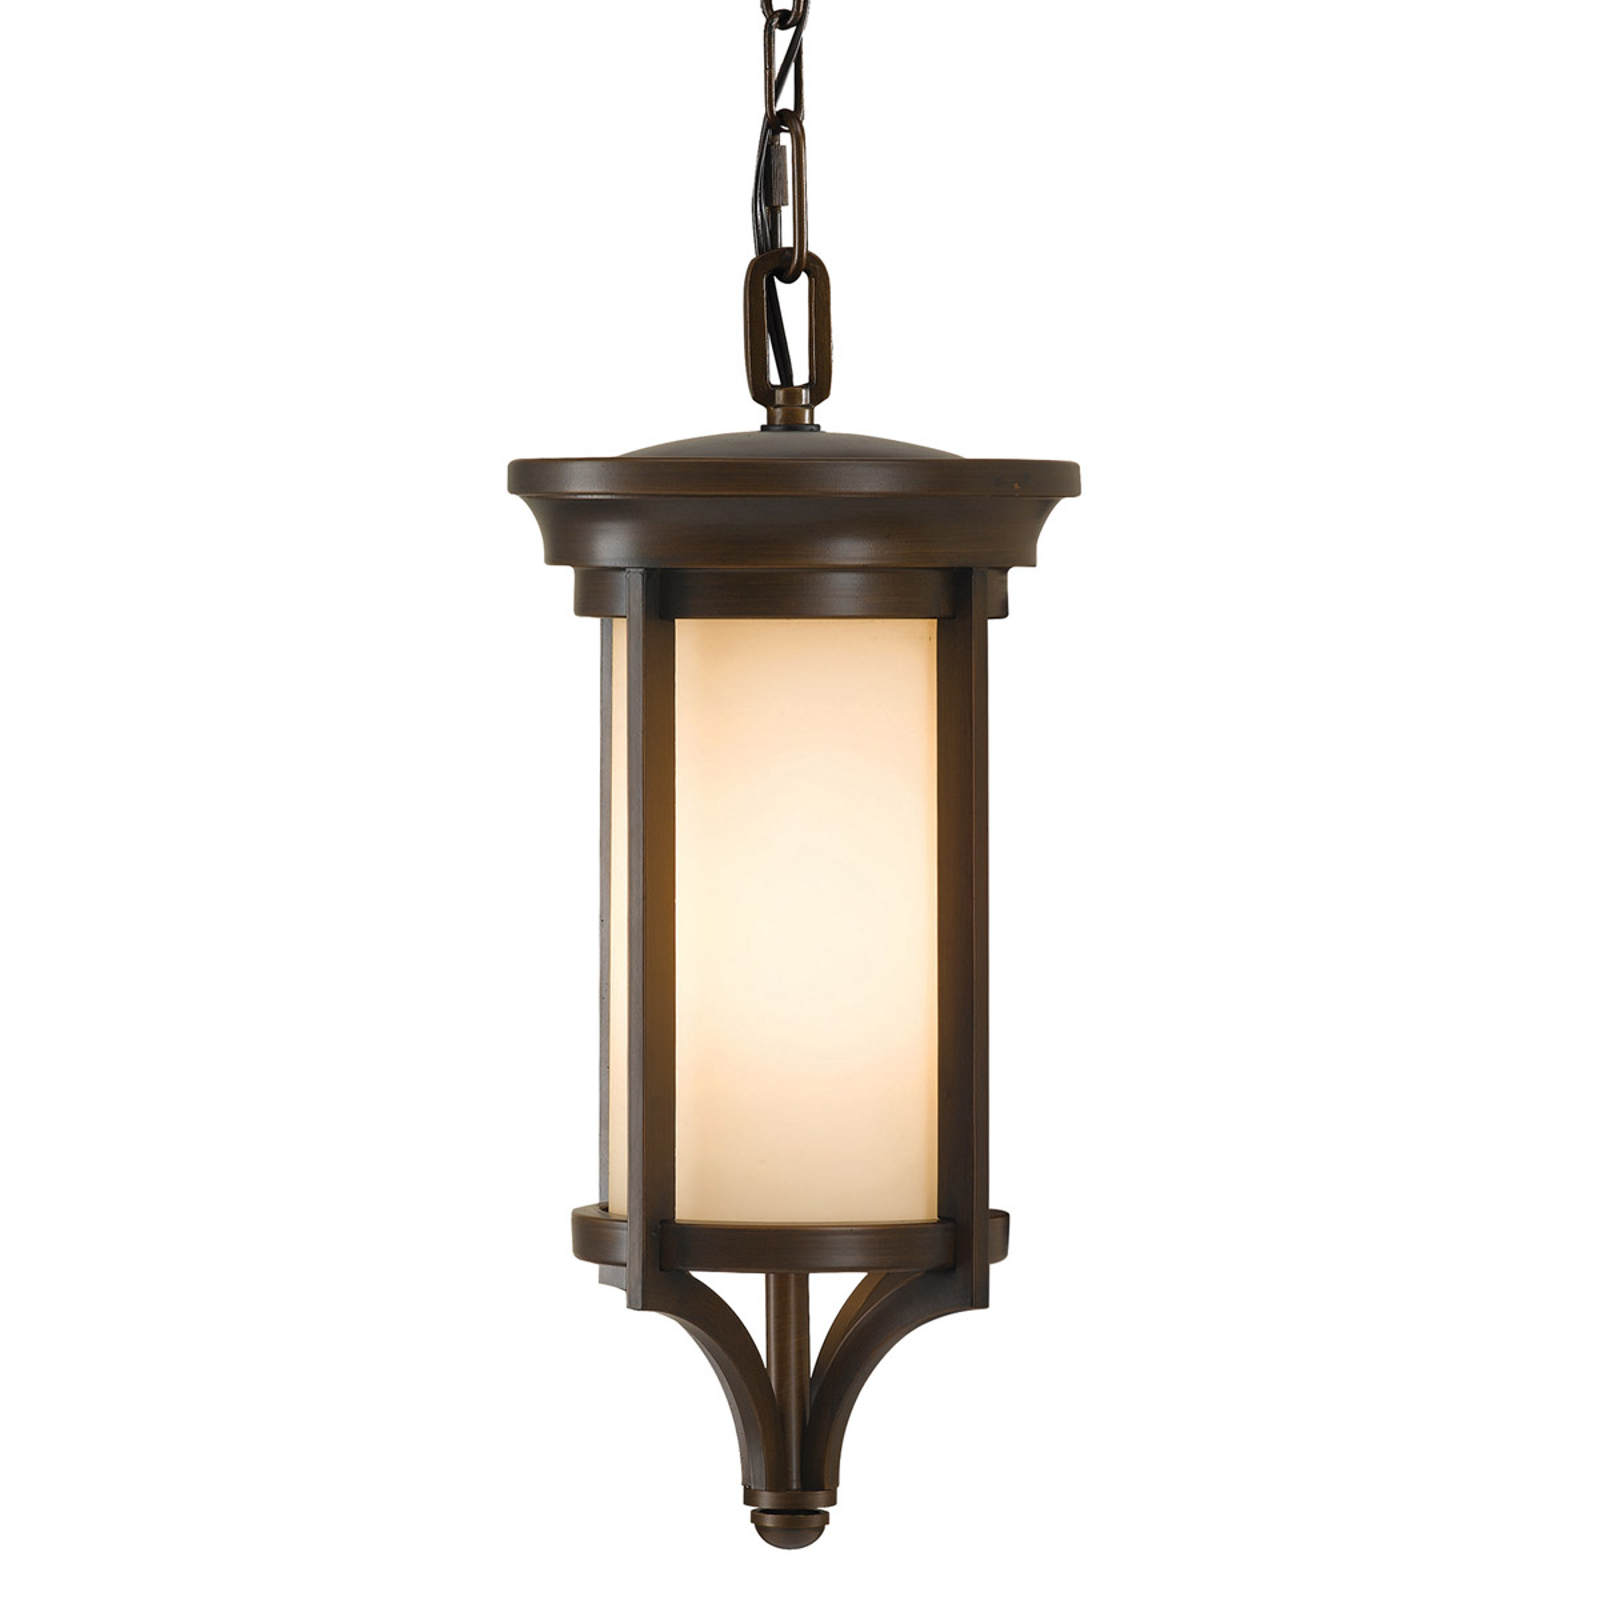 Stylish hanging lamp Merrill for outdoor use_3048370_1